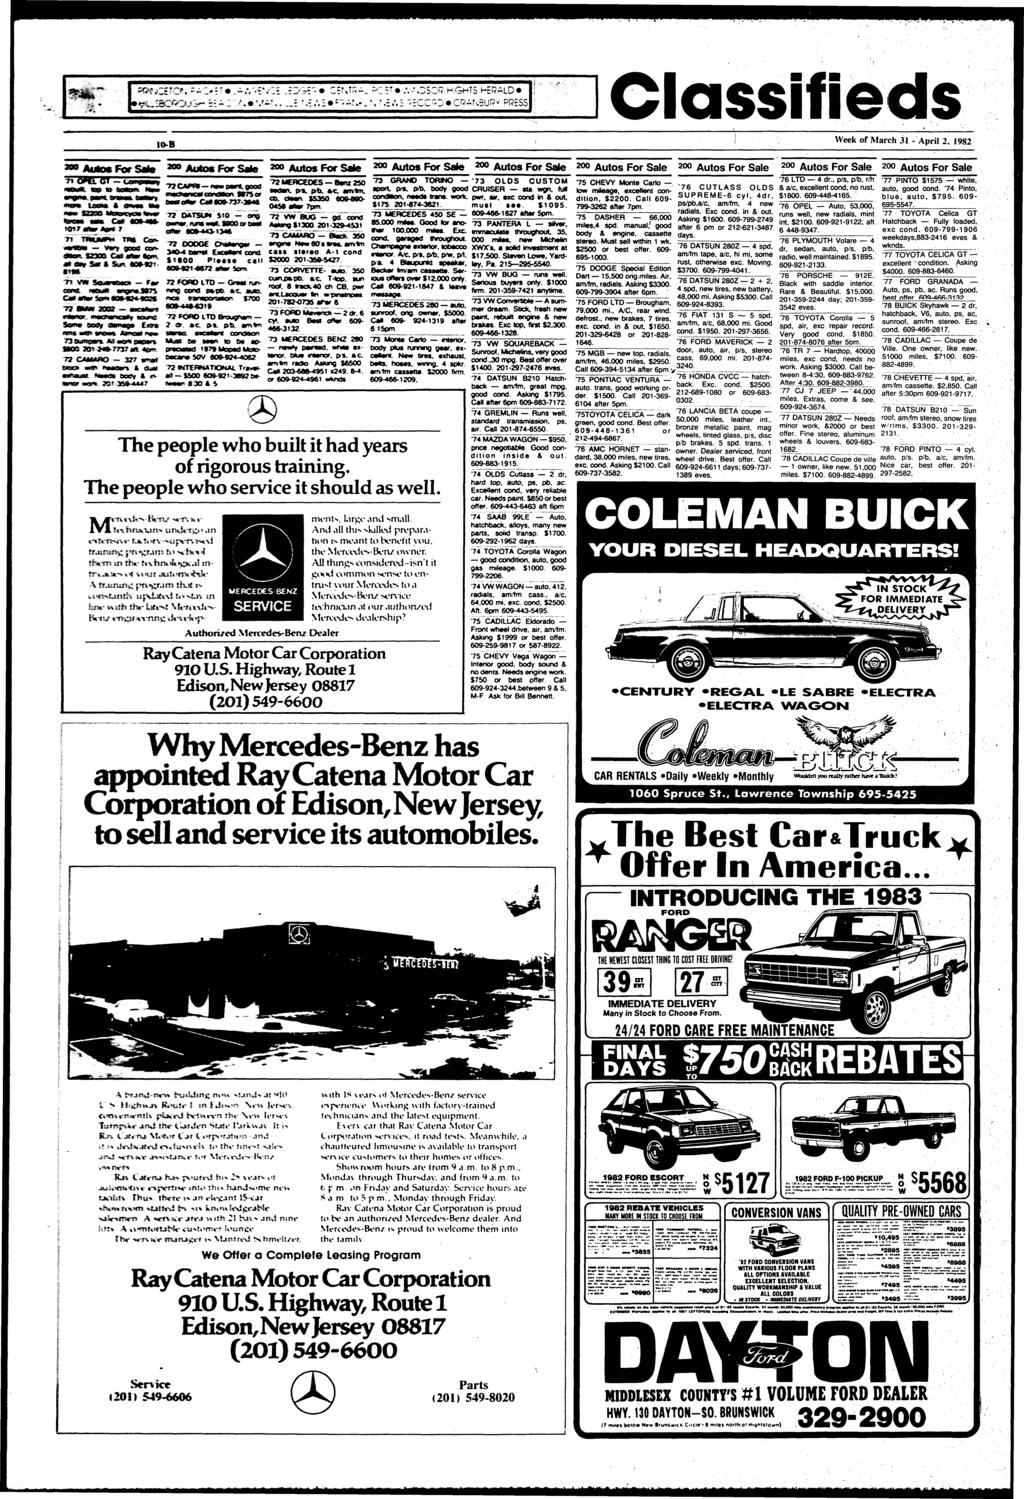 Thursday April 11982 Vol 30 No Cents Says He Is Custodian Of Rv Plumbing System Diagram Moreover 1982 Coachmen Travel Trailer The Earth Cherris Loans Scouts Land Pdf